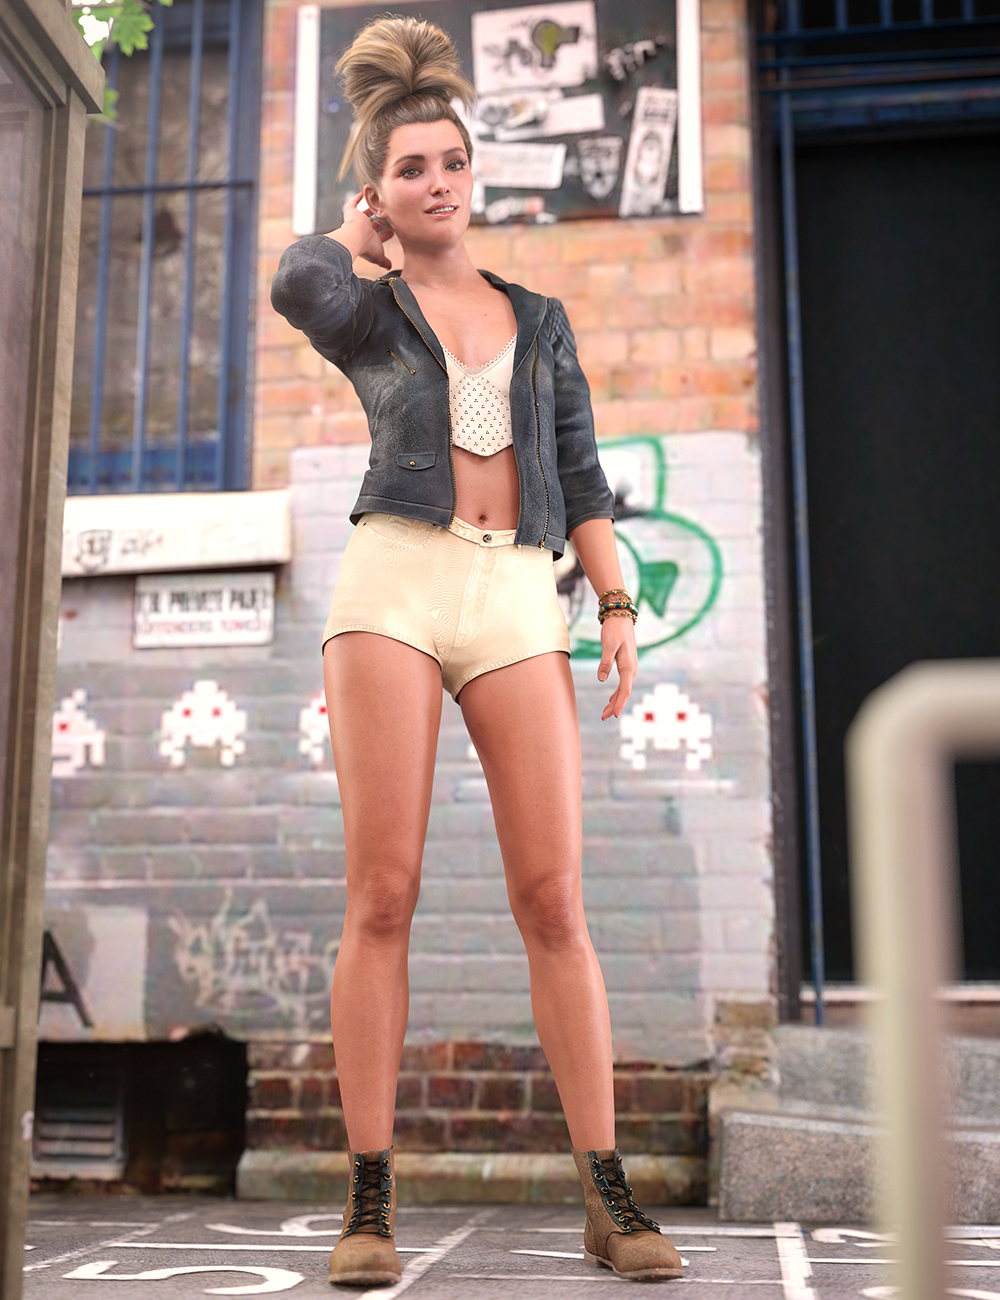 Summers End Outfit for Genesis 8.1 Females by: Arien, 3D Models by Daz 3D